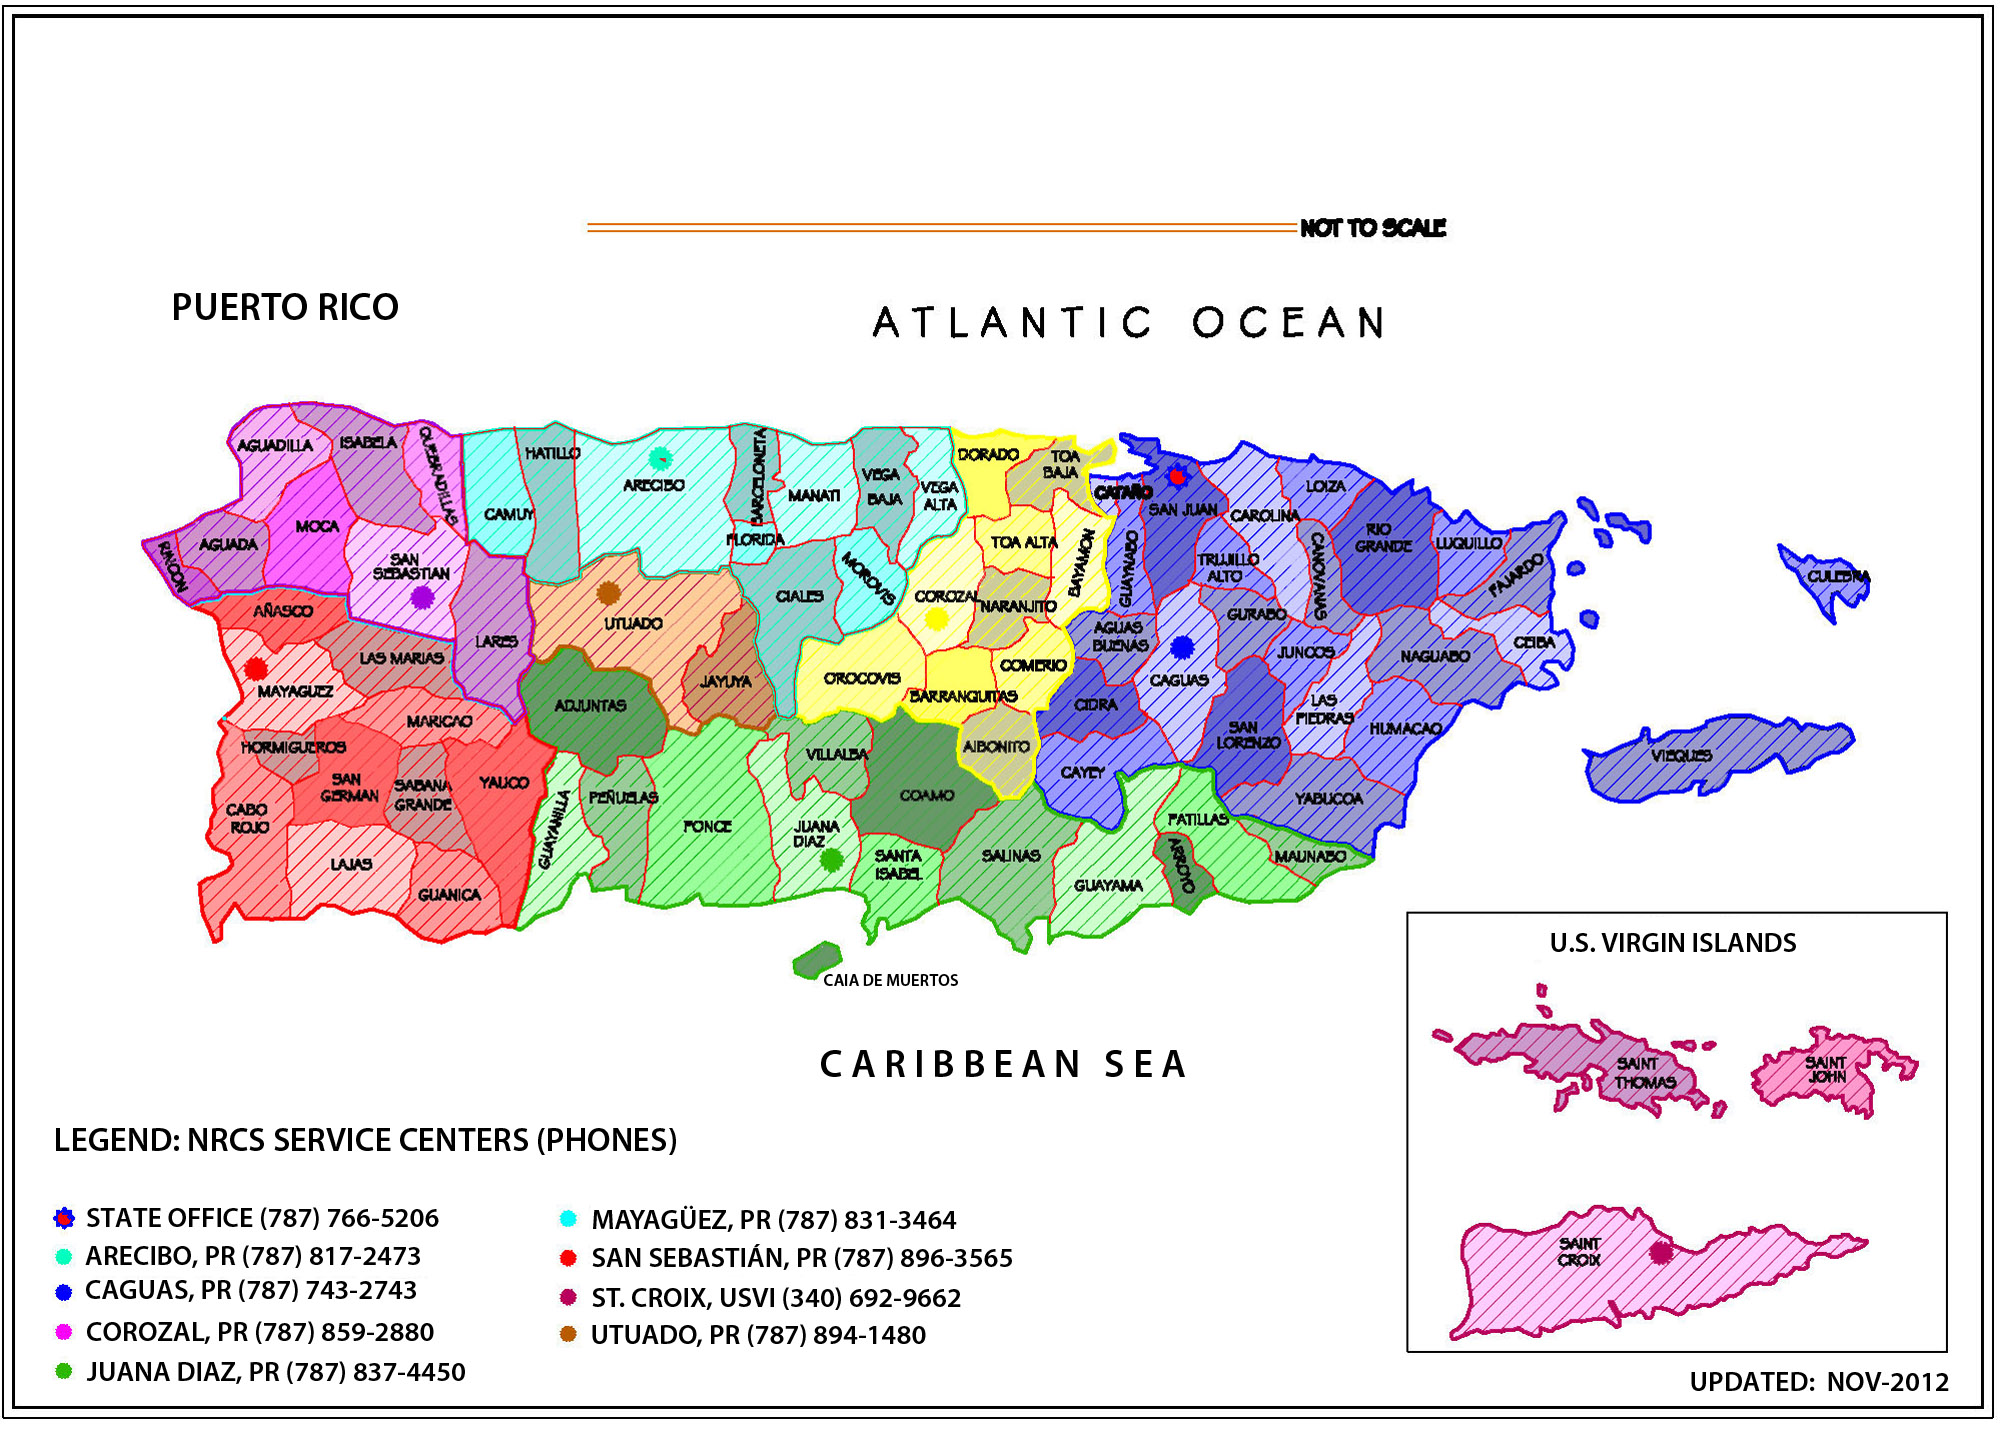 What Are The Main Natural Resources Of The Caribbean Islands